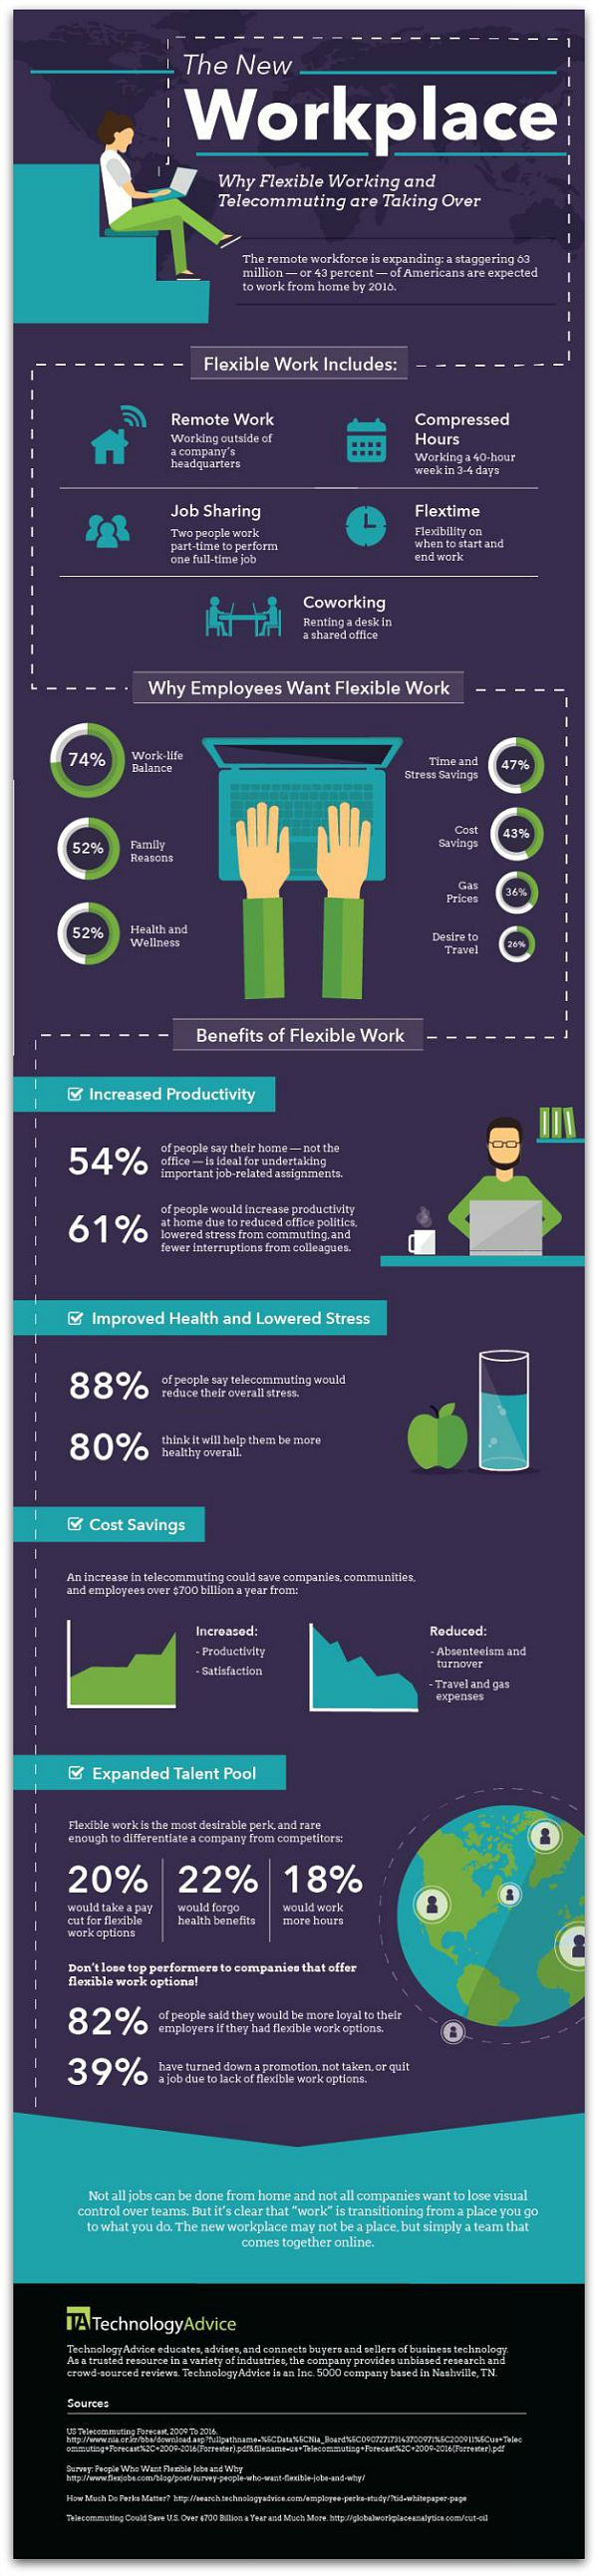 infographic workers overwhelmingly say flexible work hours would infographic workers overwhelmingly say flexible work hours would boost their loyalty articles main